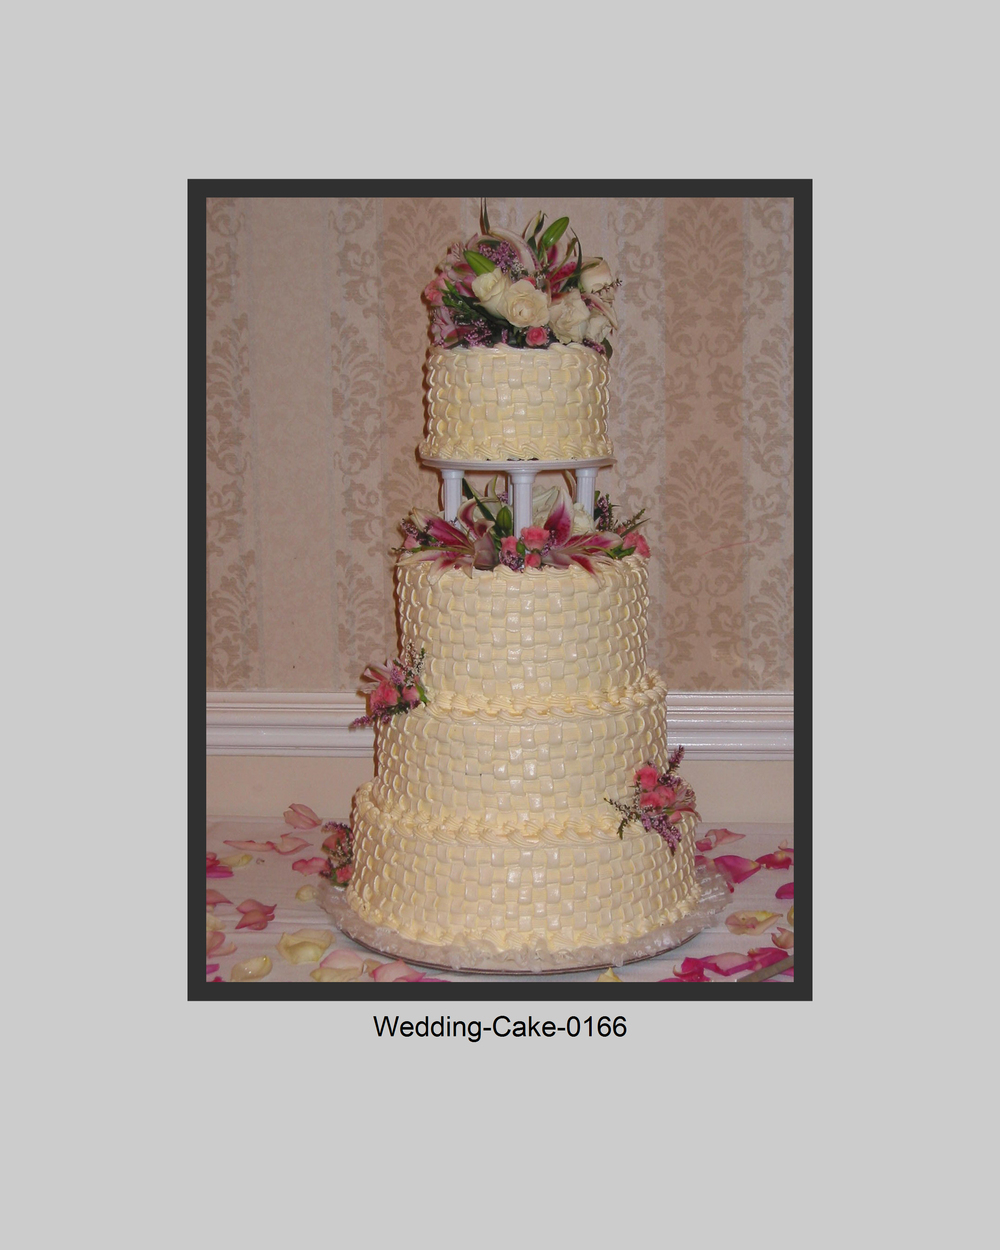 Wedding-Cake-Prints-0166.jpg